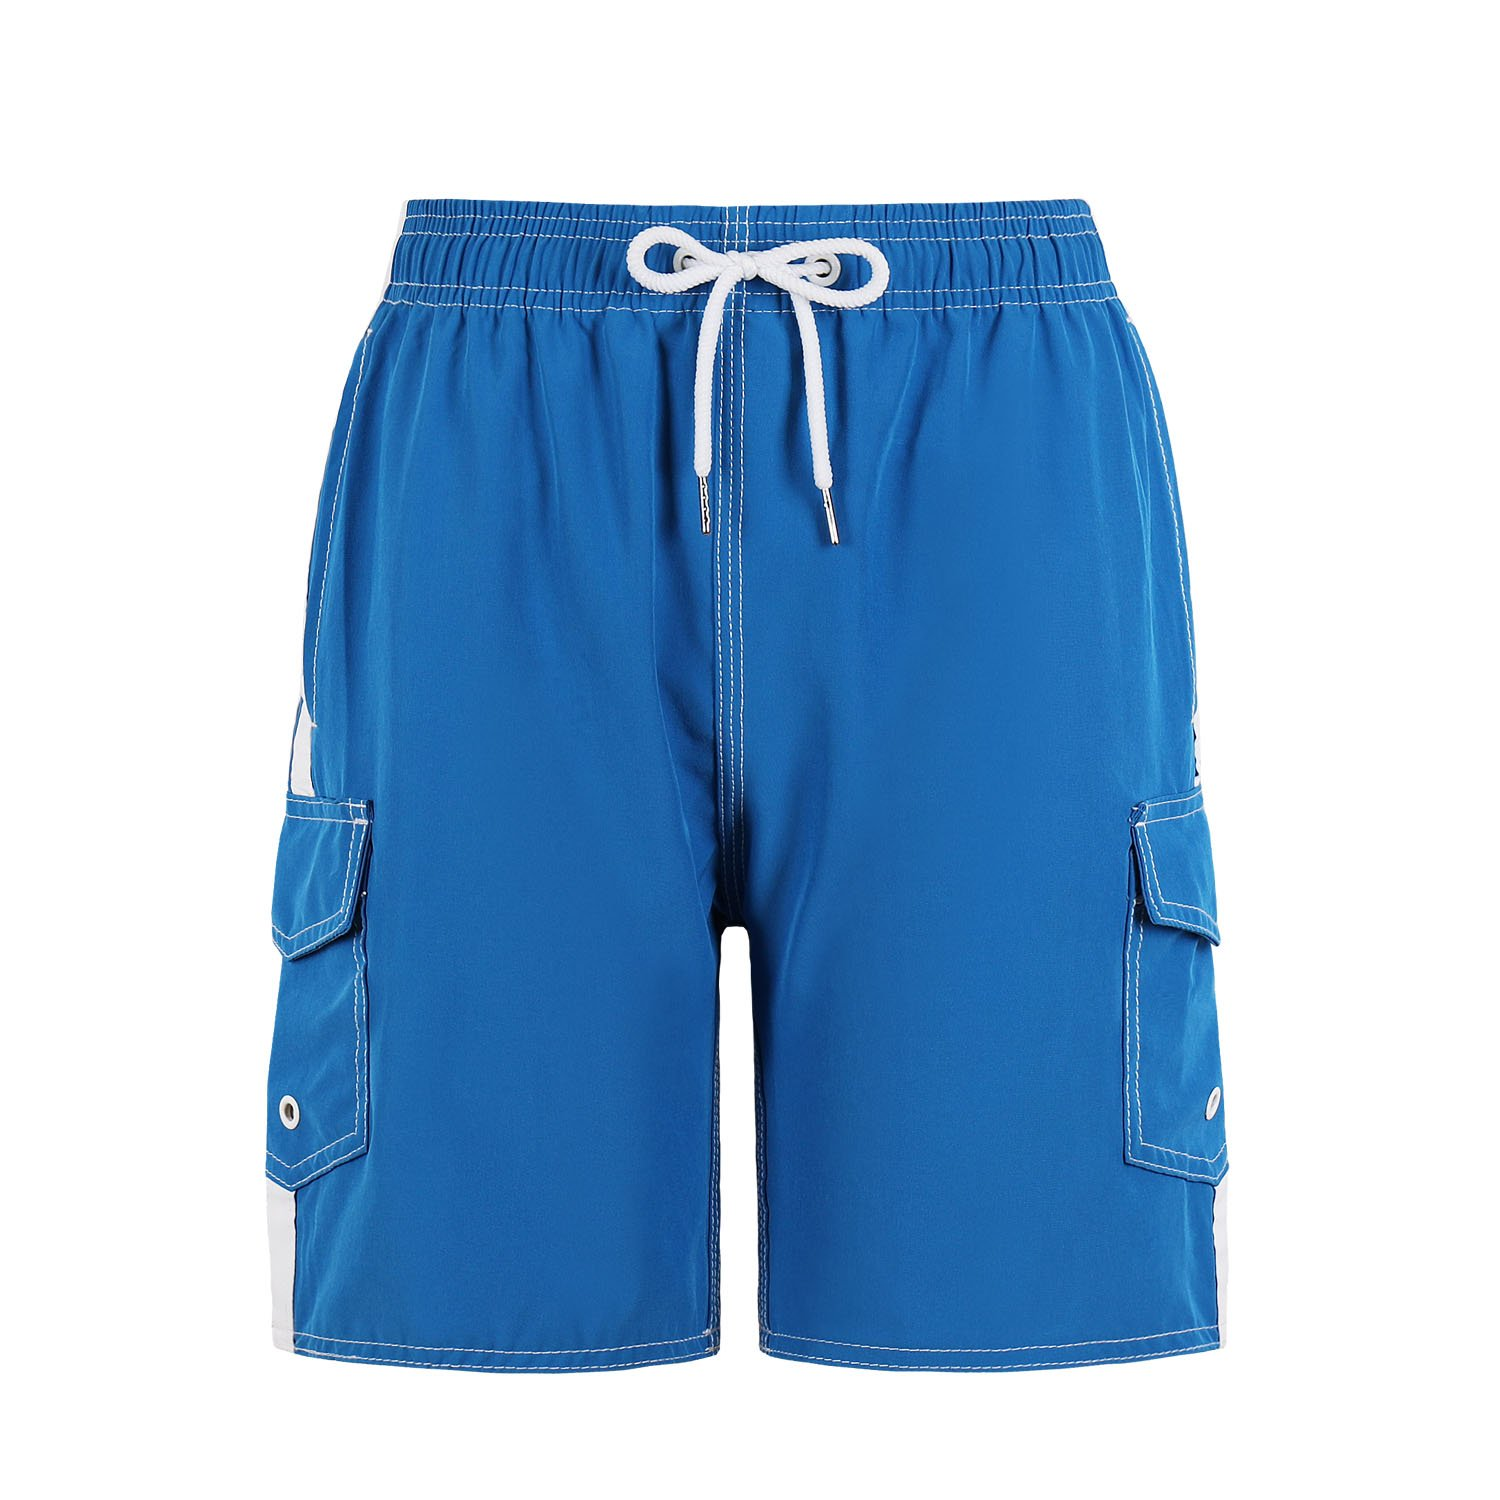 QRANSS Boys Swim Trunks Shorts Bathing Suit with Cargo Pockets